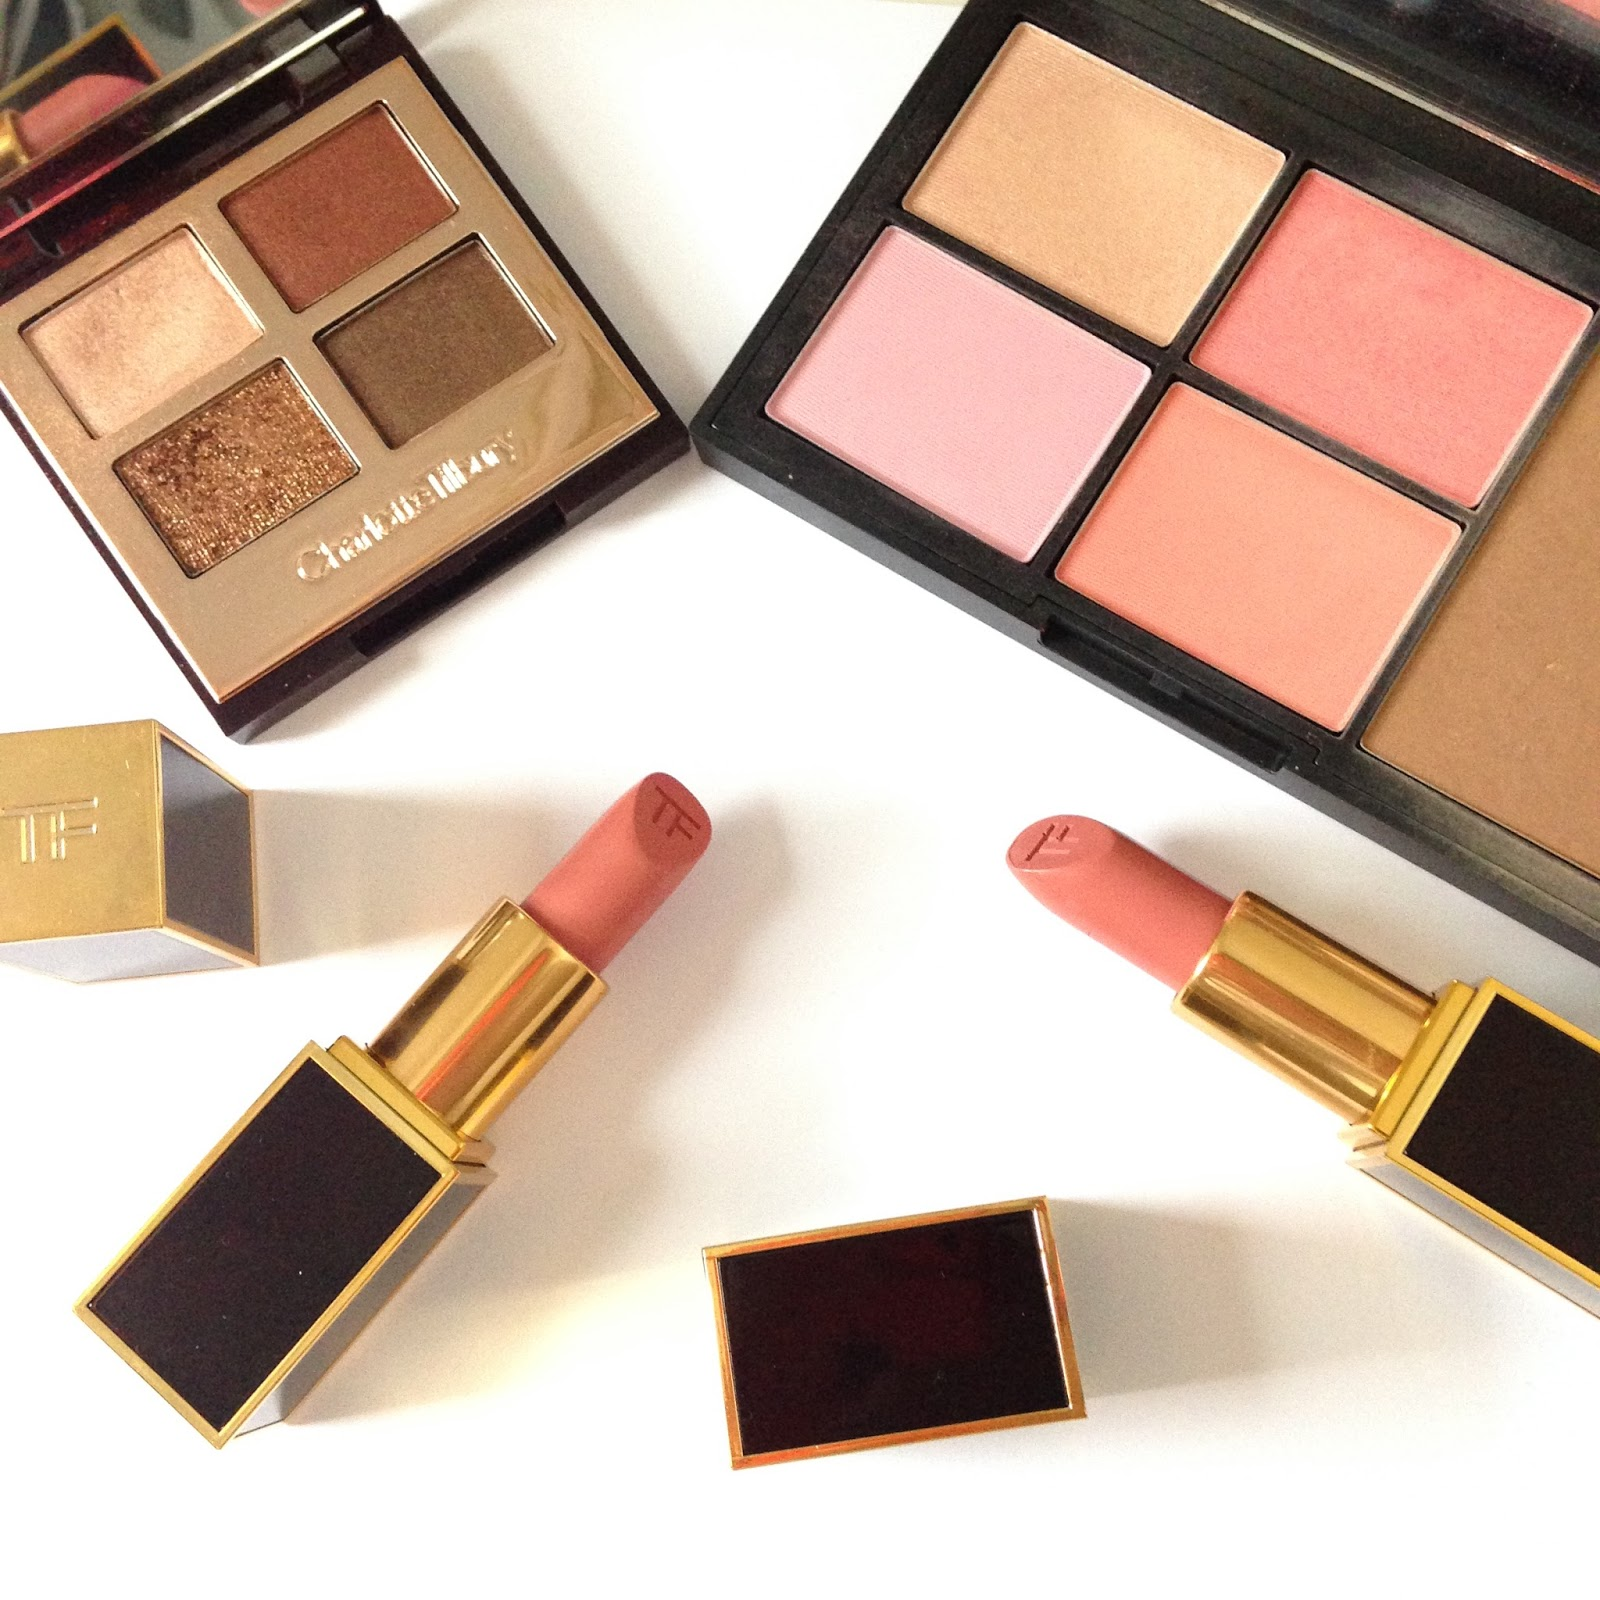 what is it about luxury beauty items?